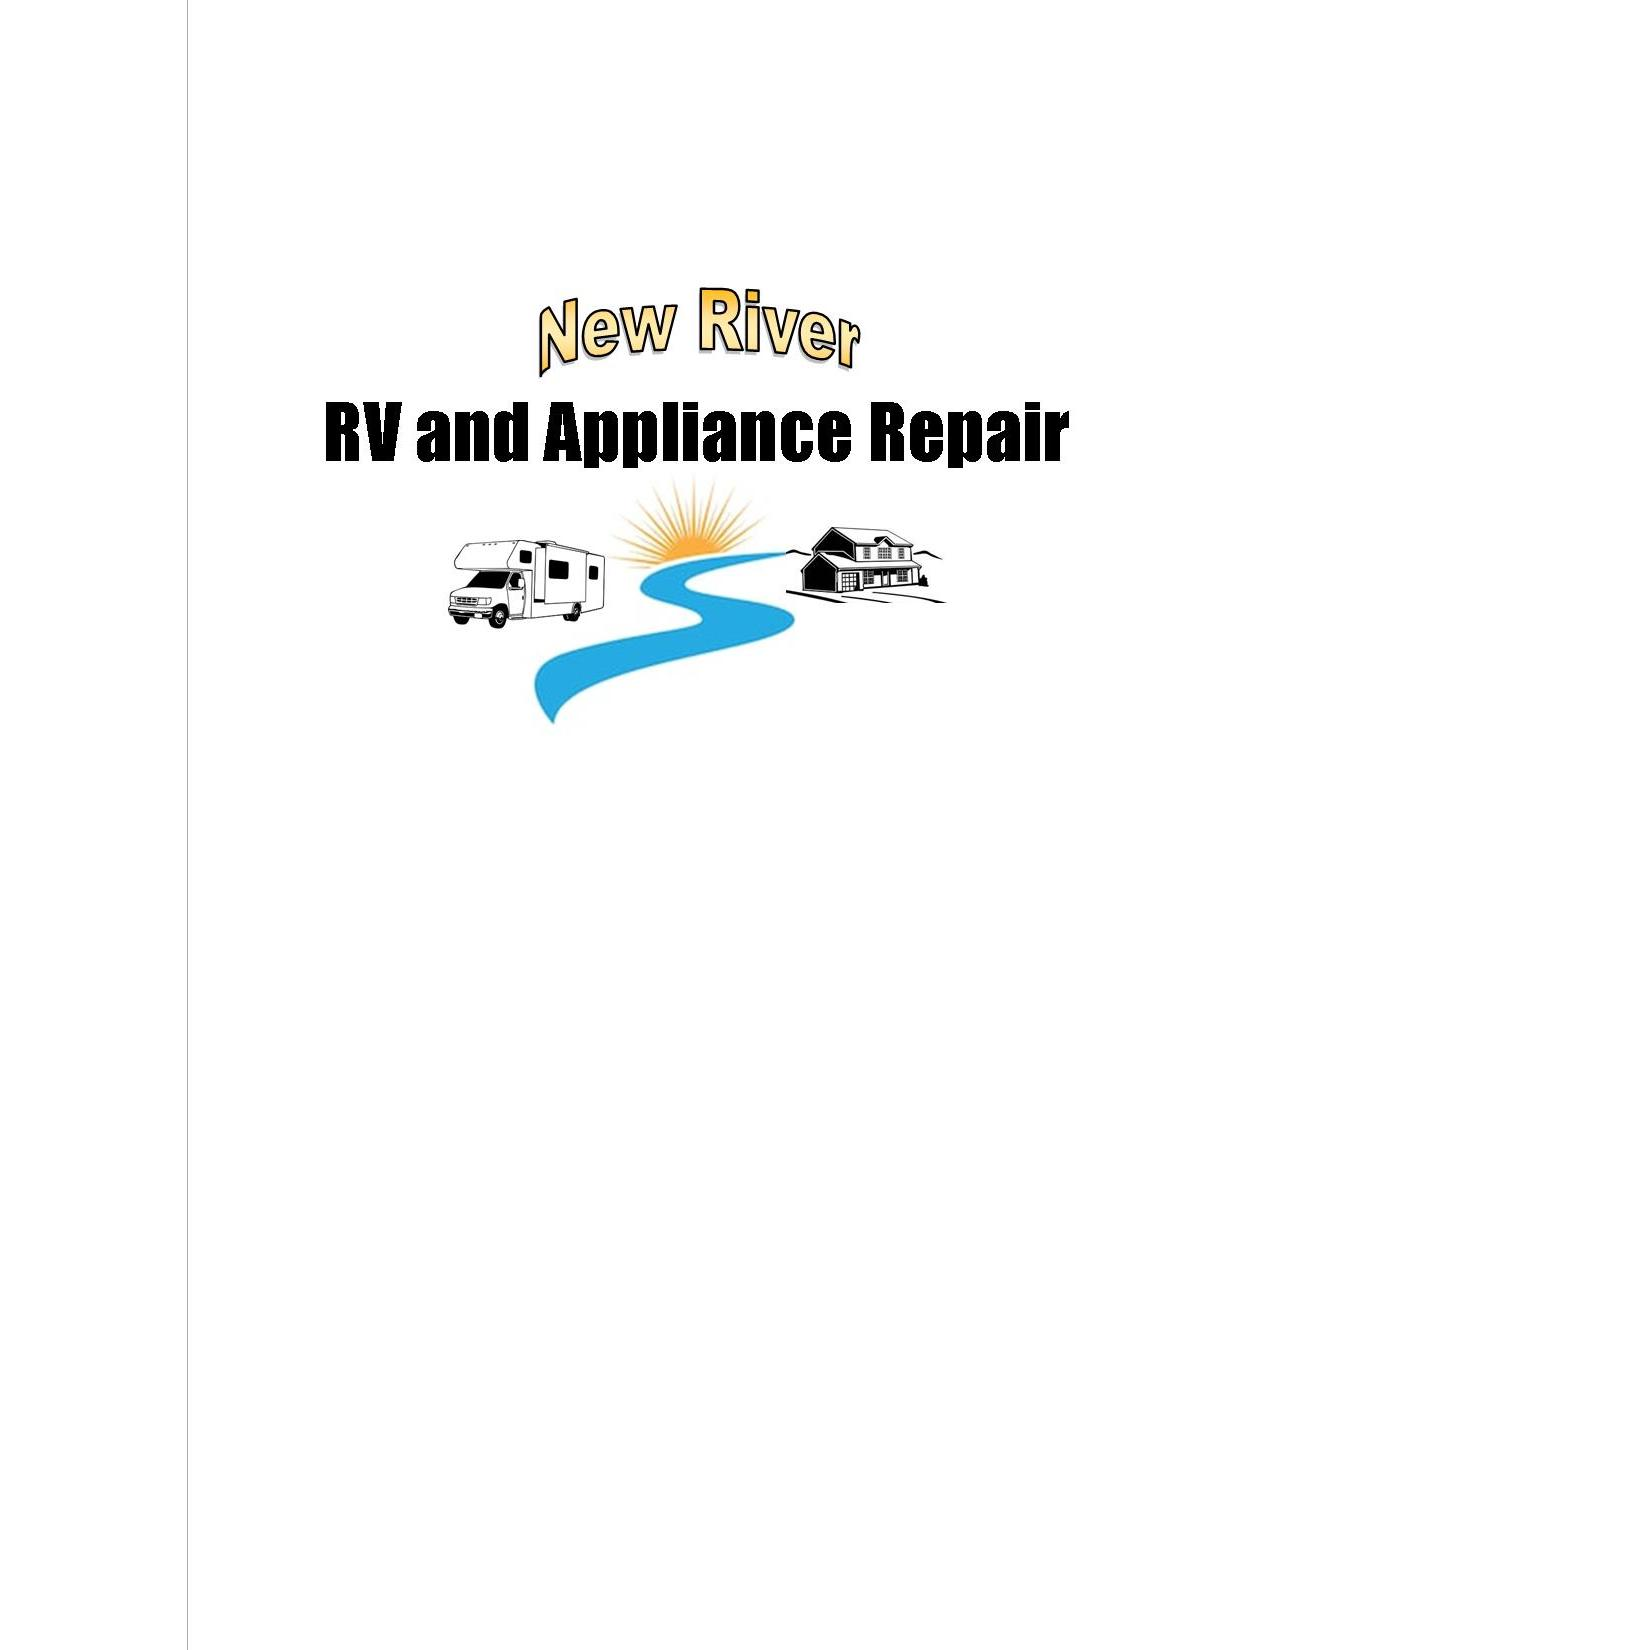 New River RV and Appliance Repair